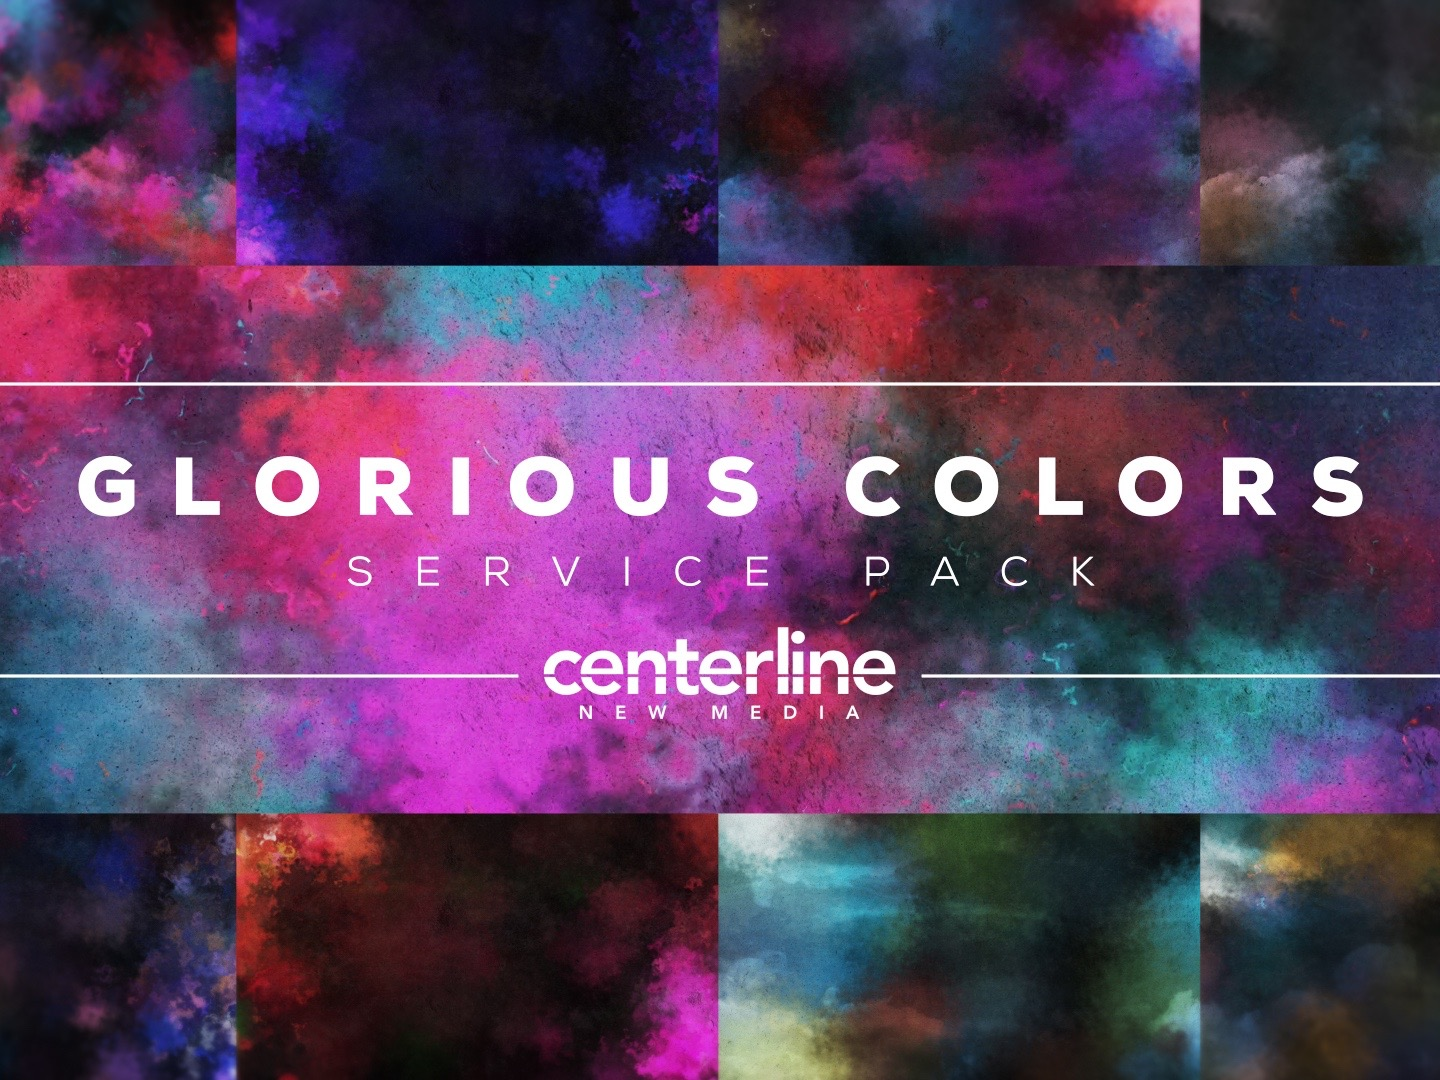 GLORIOUS COLORS SERVICE PACK